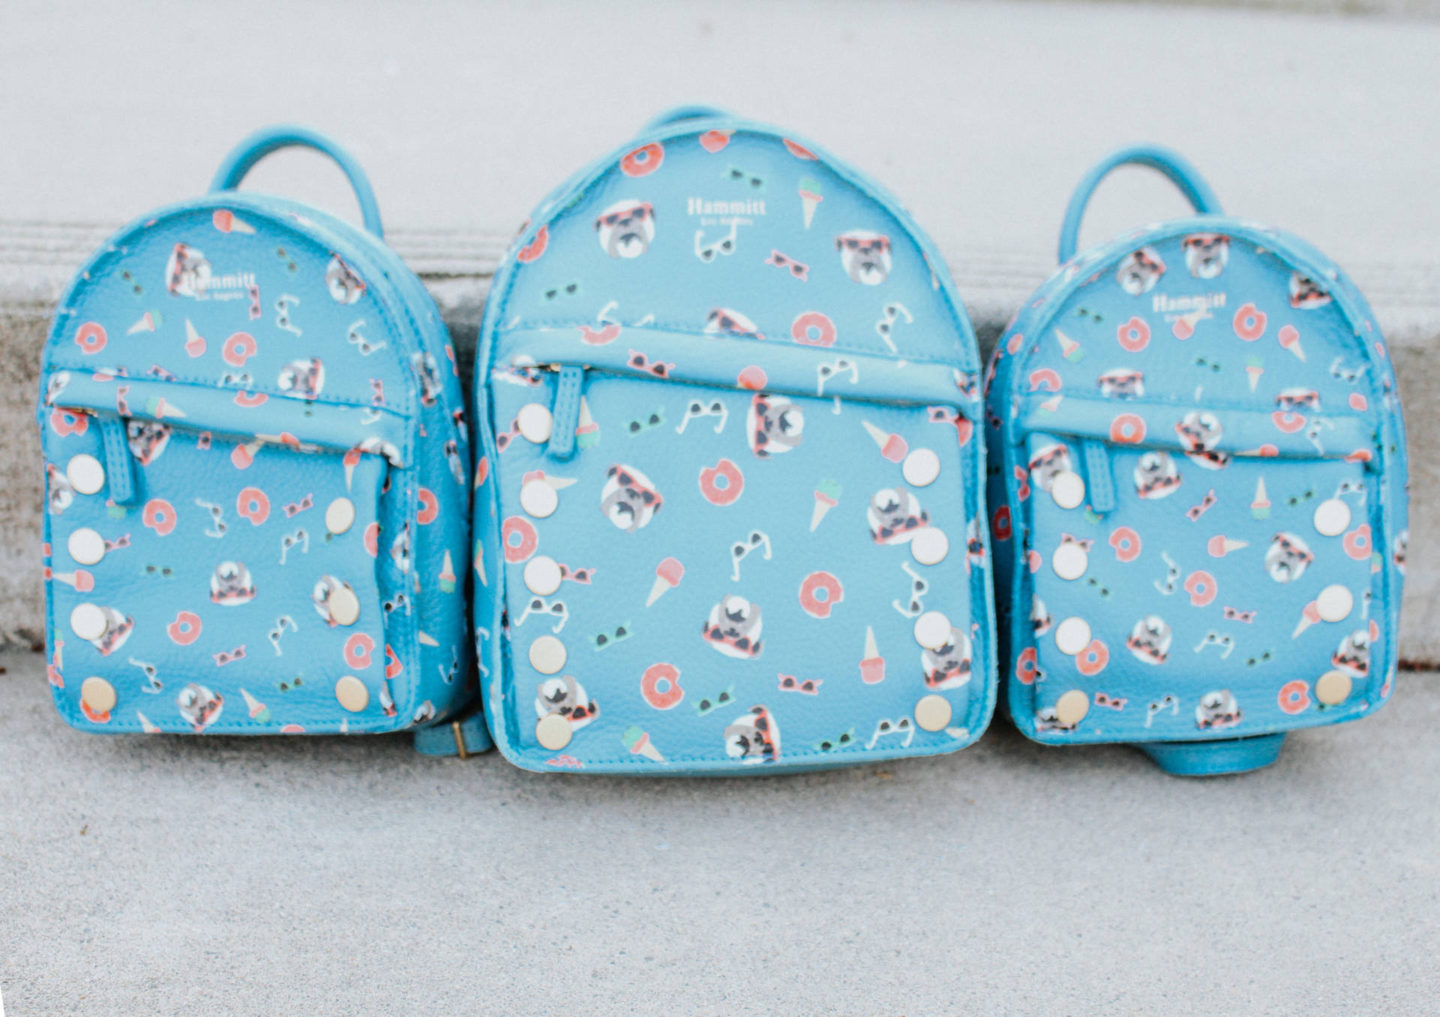 girl-time-hammitt-la- book bags